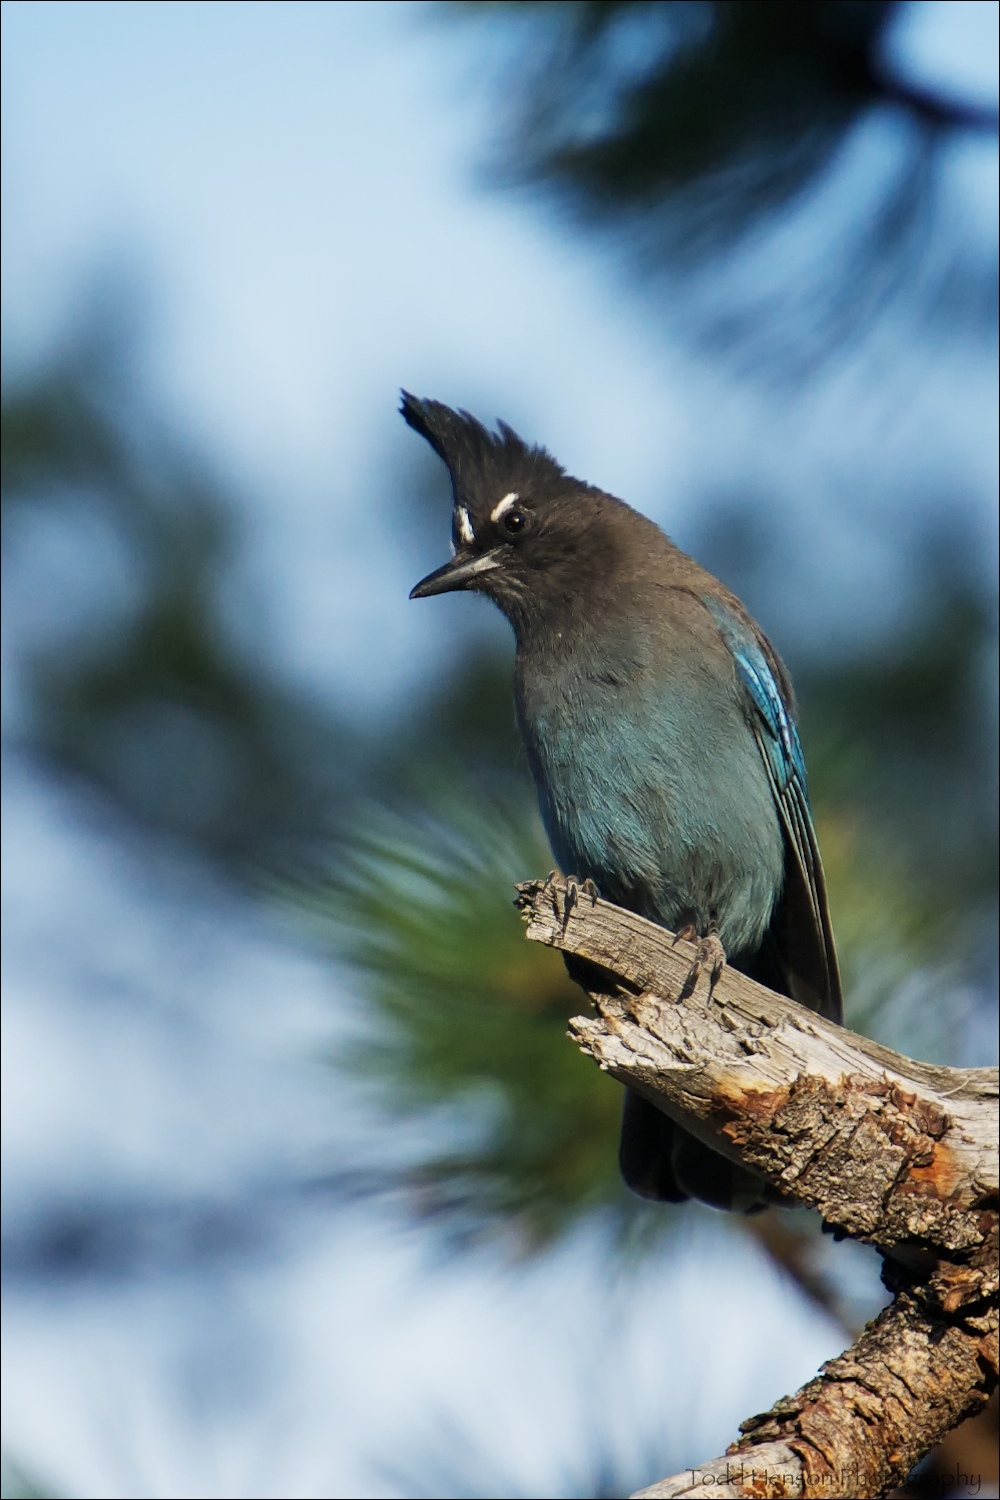 Steller's Jay with white eyebrows